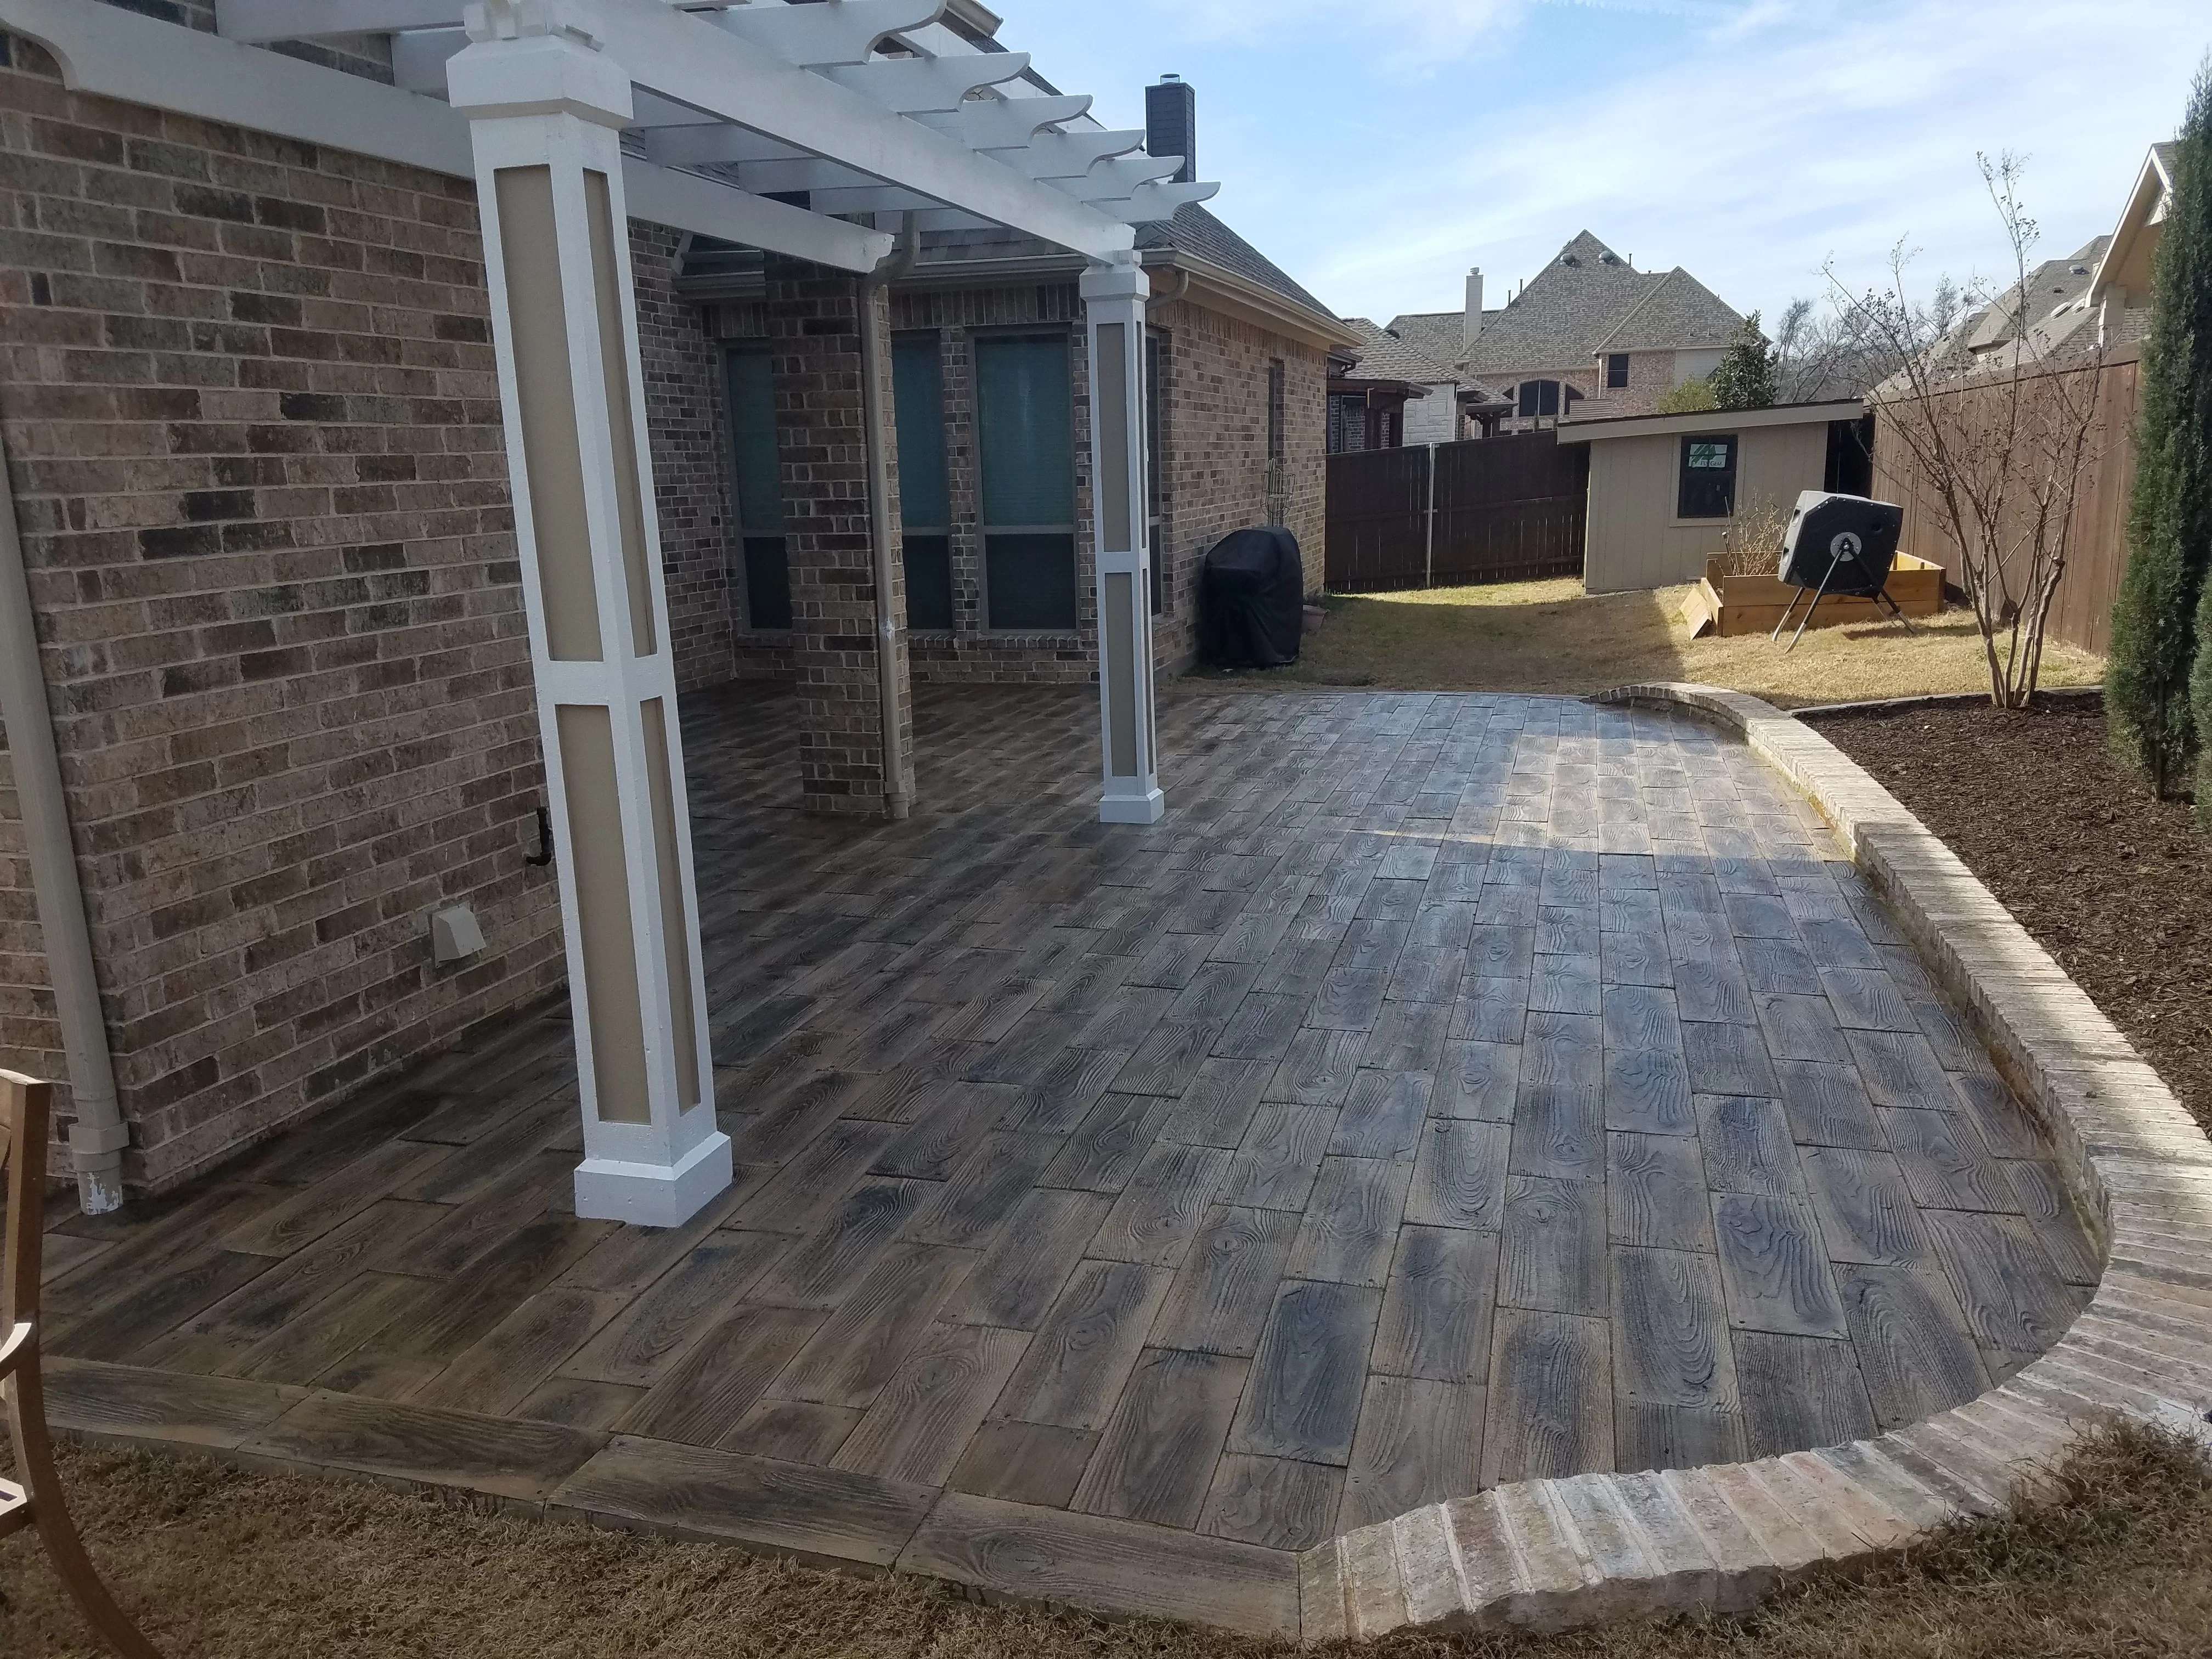 barnwood plank patio on a pallet paver in brown set